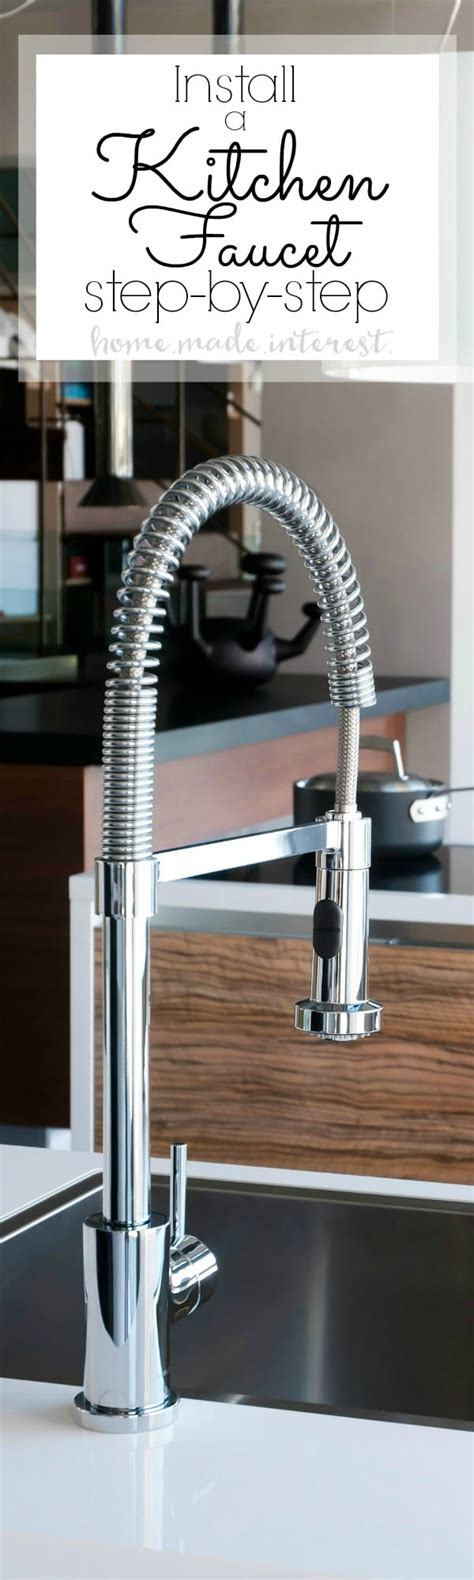 changing kitchen faucet do yourself how to install a kitchen faucet home made interest